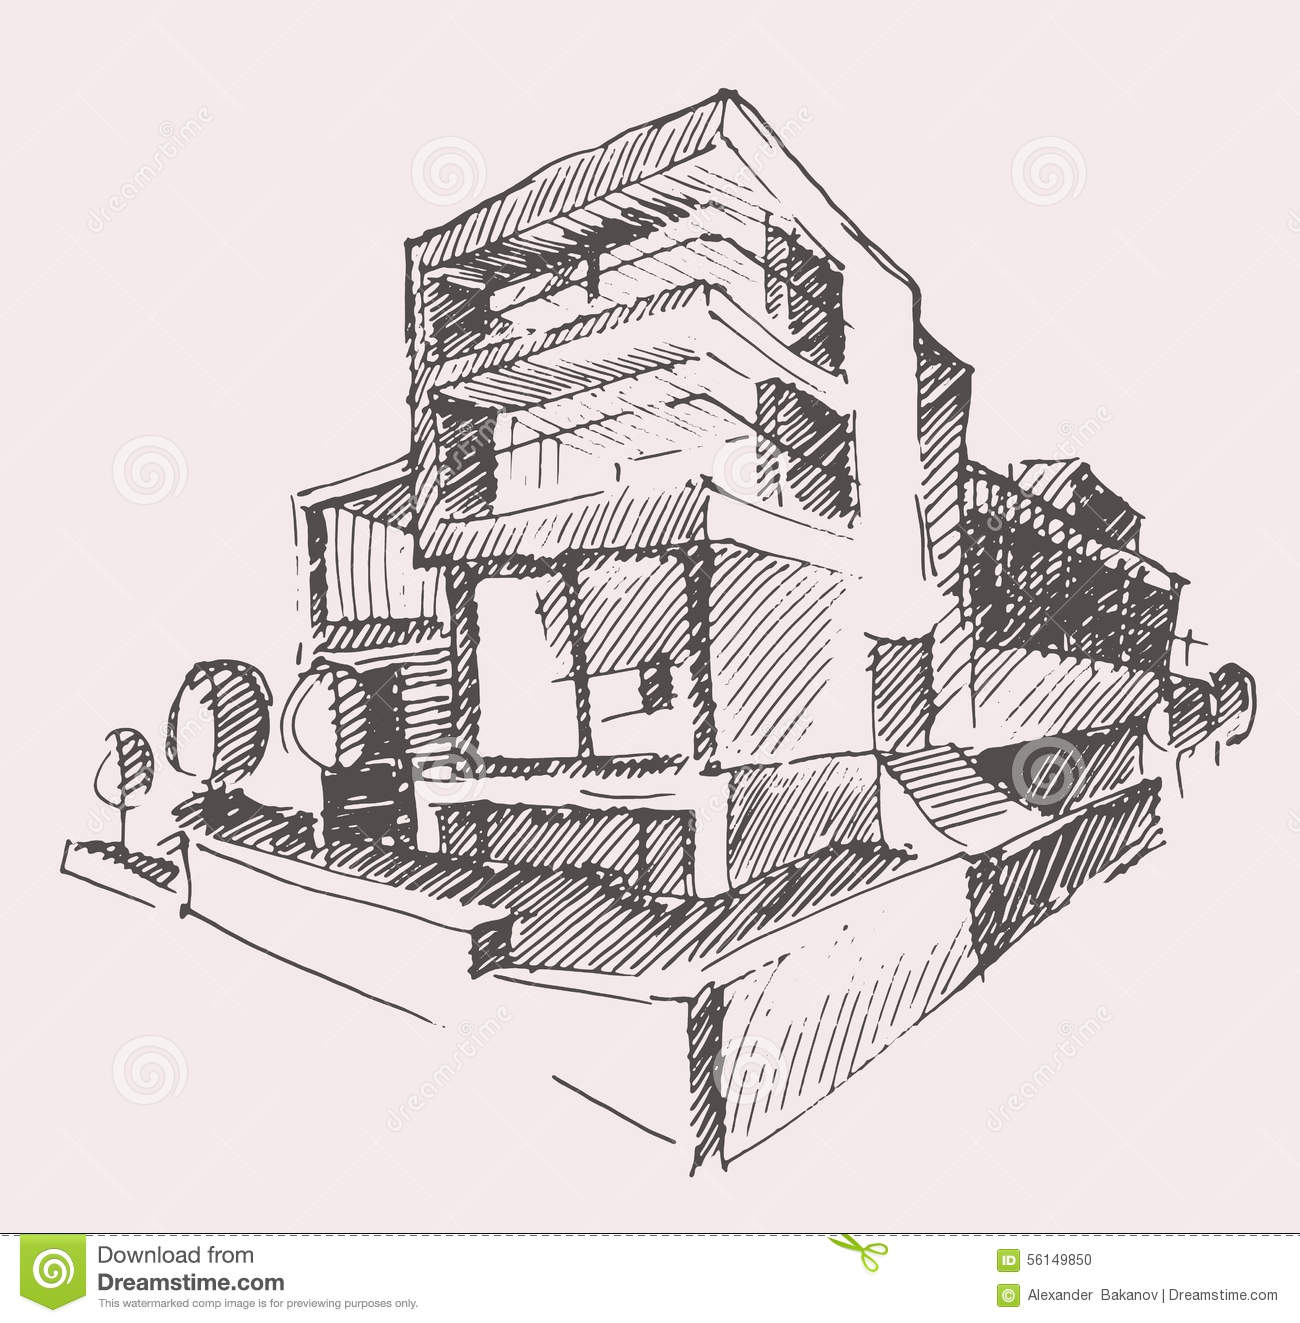 Architect draft modern new house building concept stock for Modern house construction